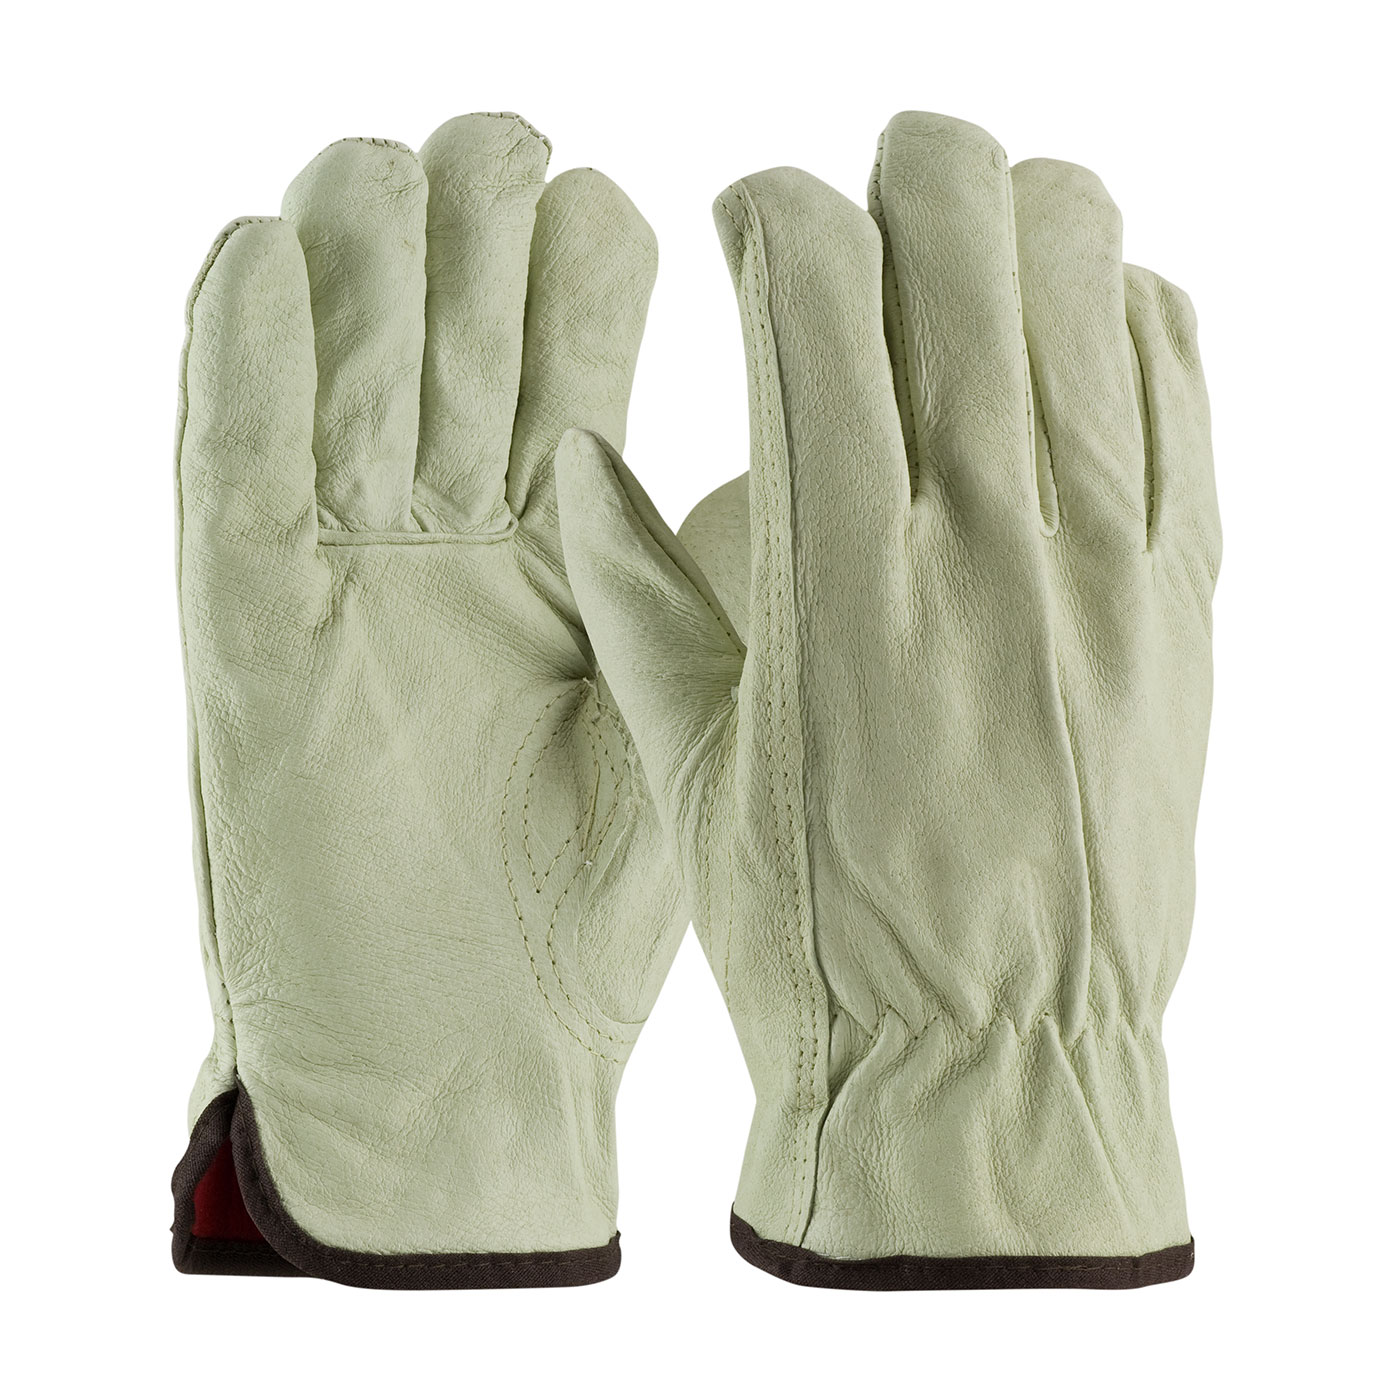 Top Grain Pigskin Leather Glove with Red Thermal Lining case of 72 pairs